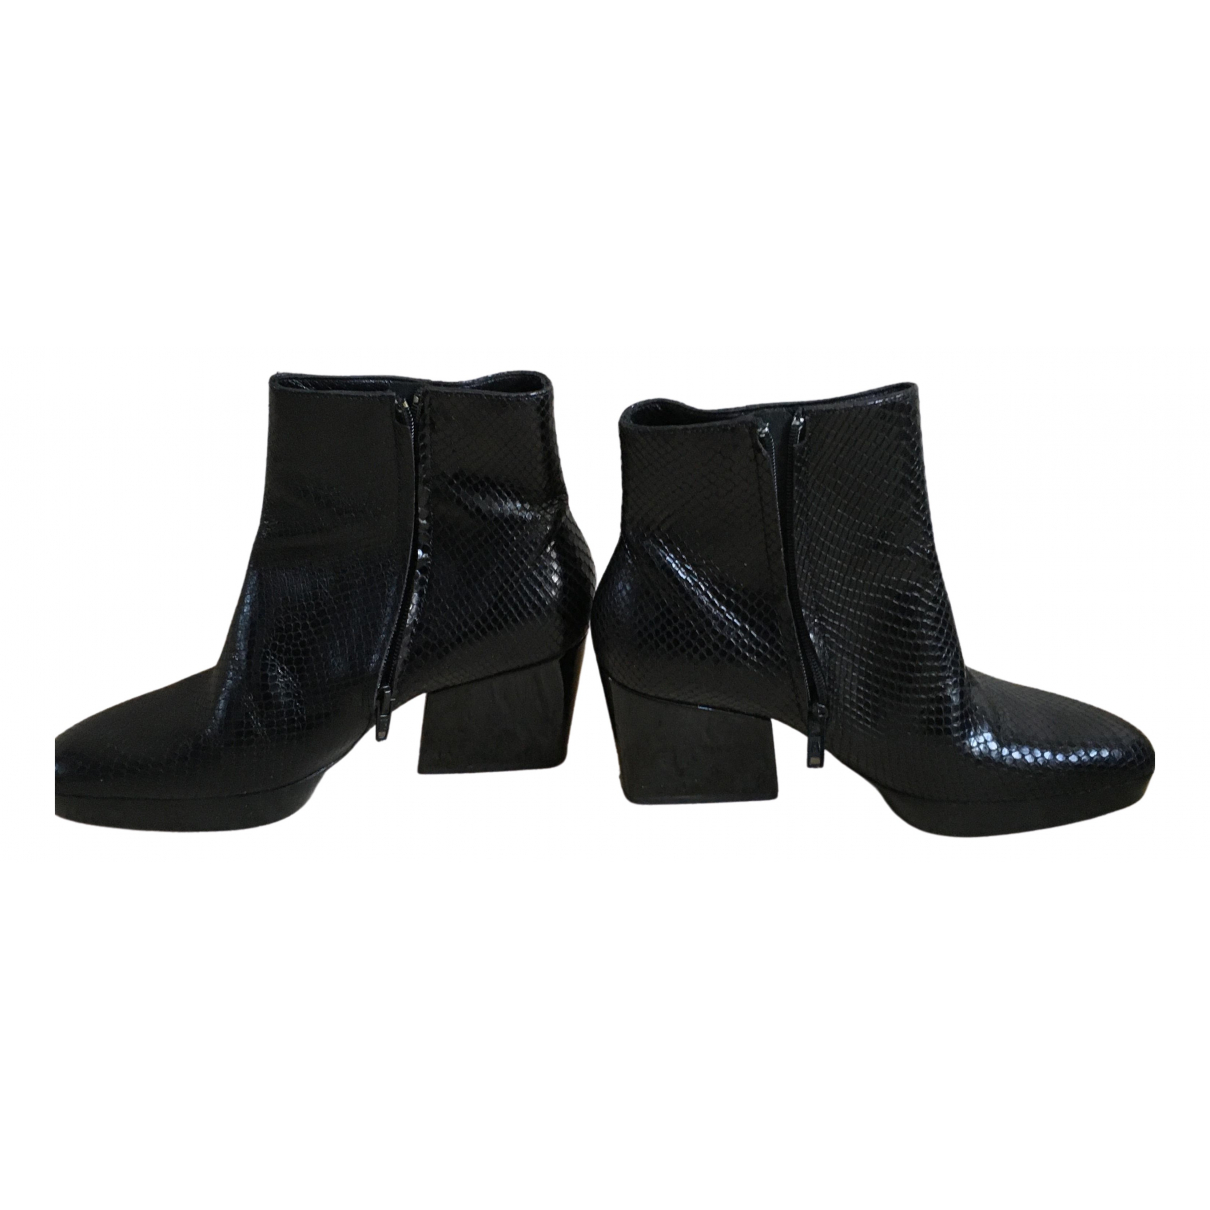 Robert Clergerie N Black Leather Ankle boots for Women 7.5 US